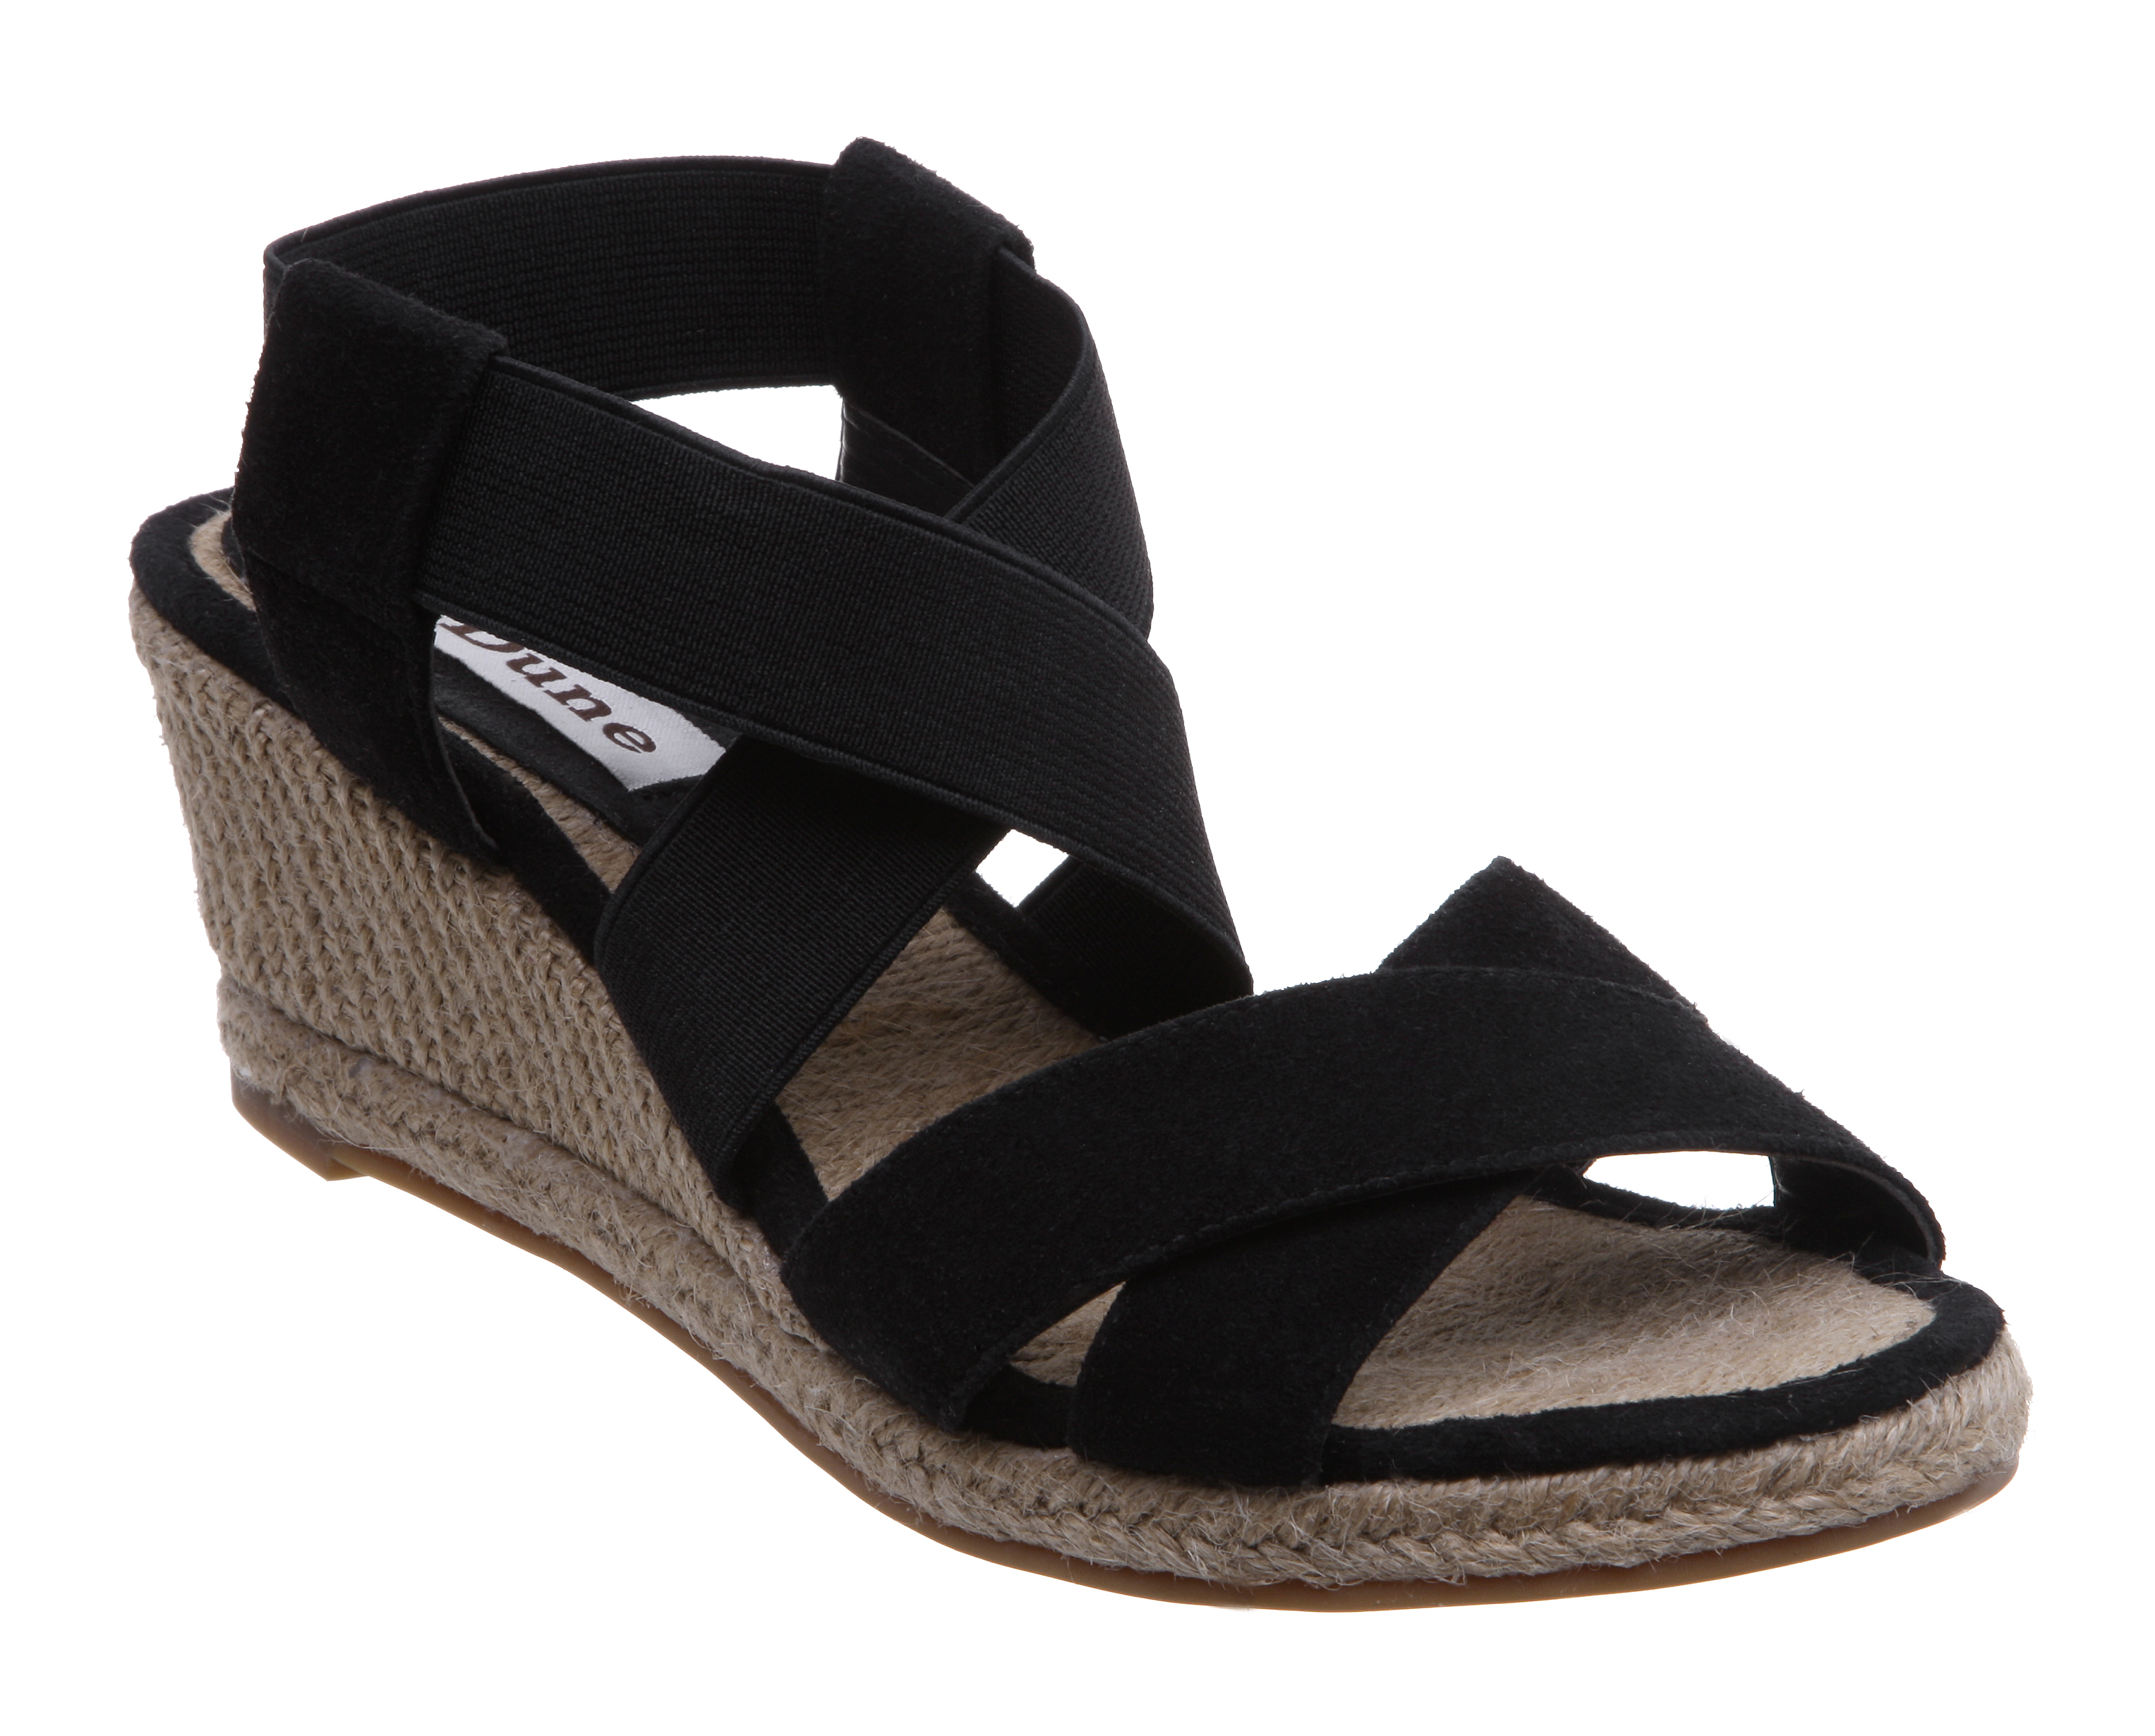 NEW-DUNE-LADIES-NEVANA-WOMENS-ELASTIC-ESPADRILLE-STRAP-WEDGE-HEEL-SHOES-SIZE-3-8